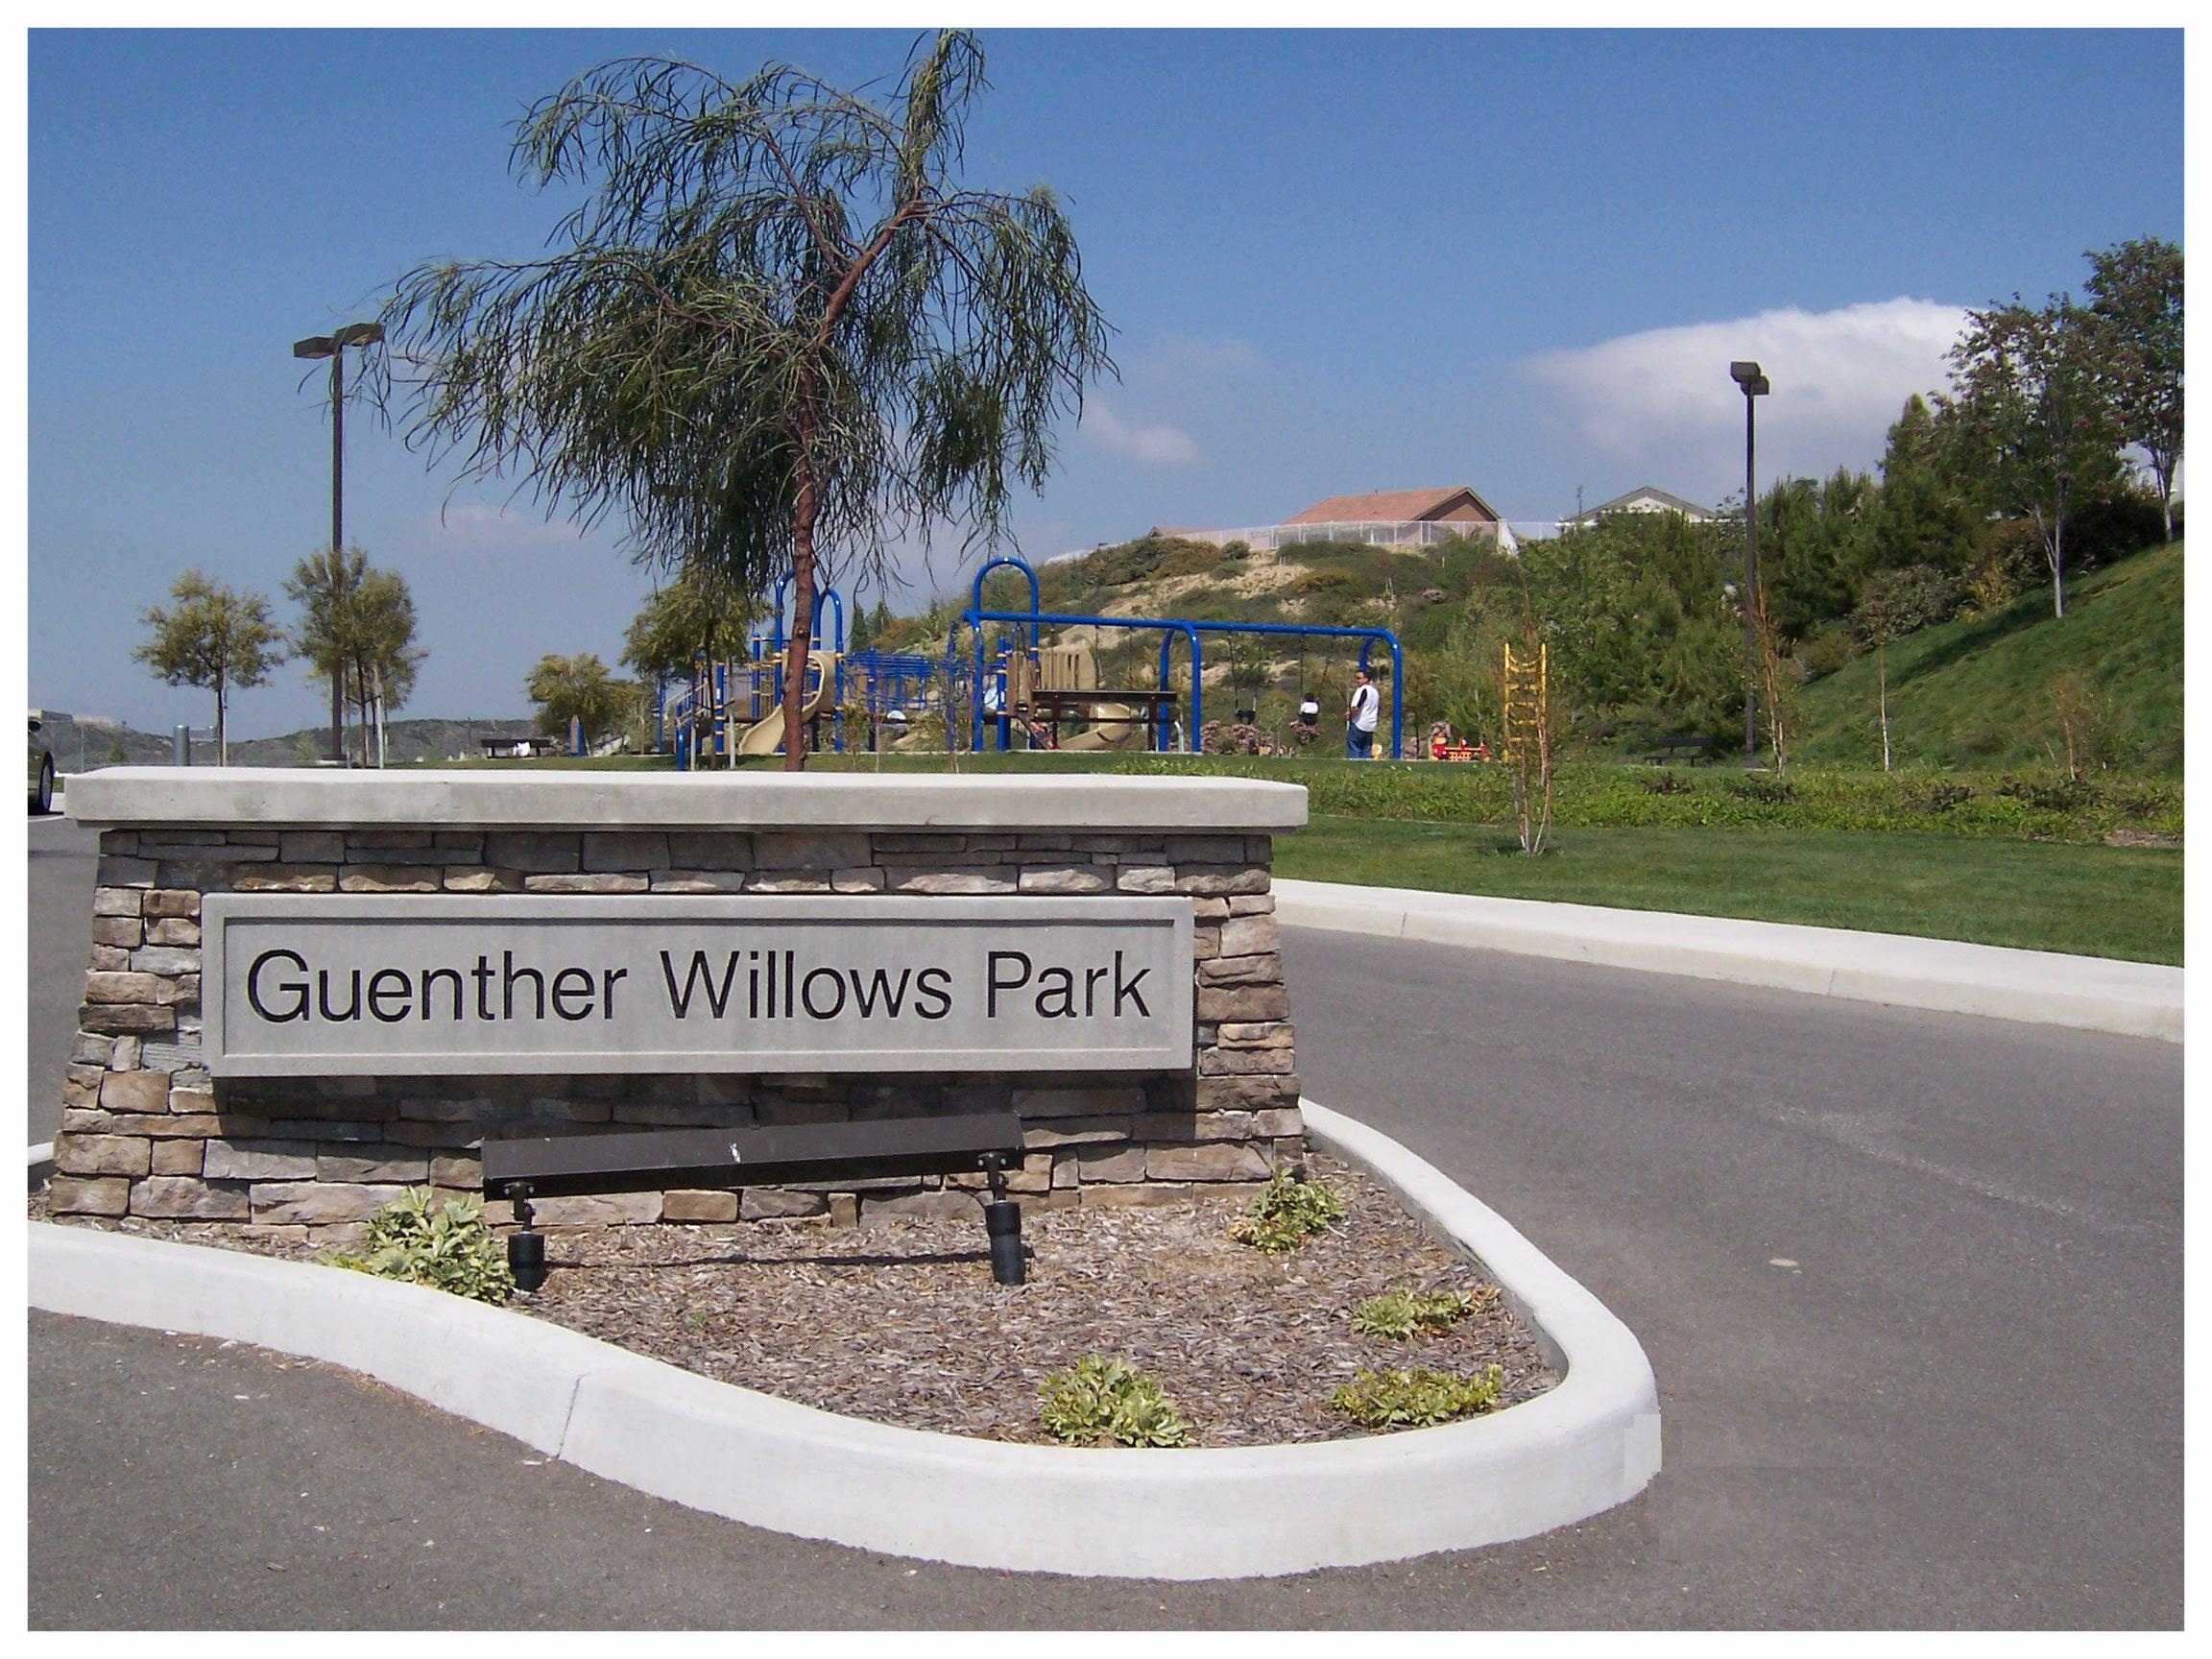 Guenther Willows Park